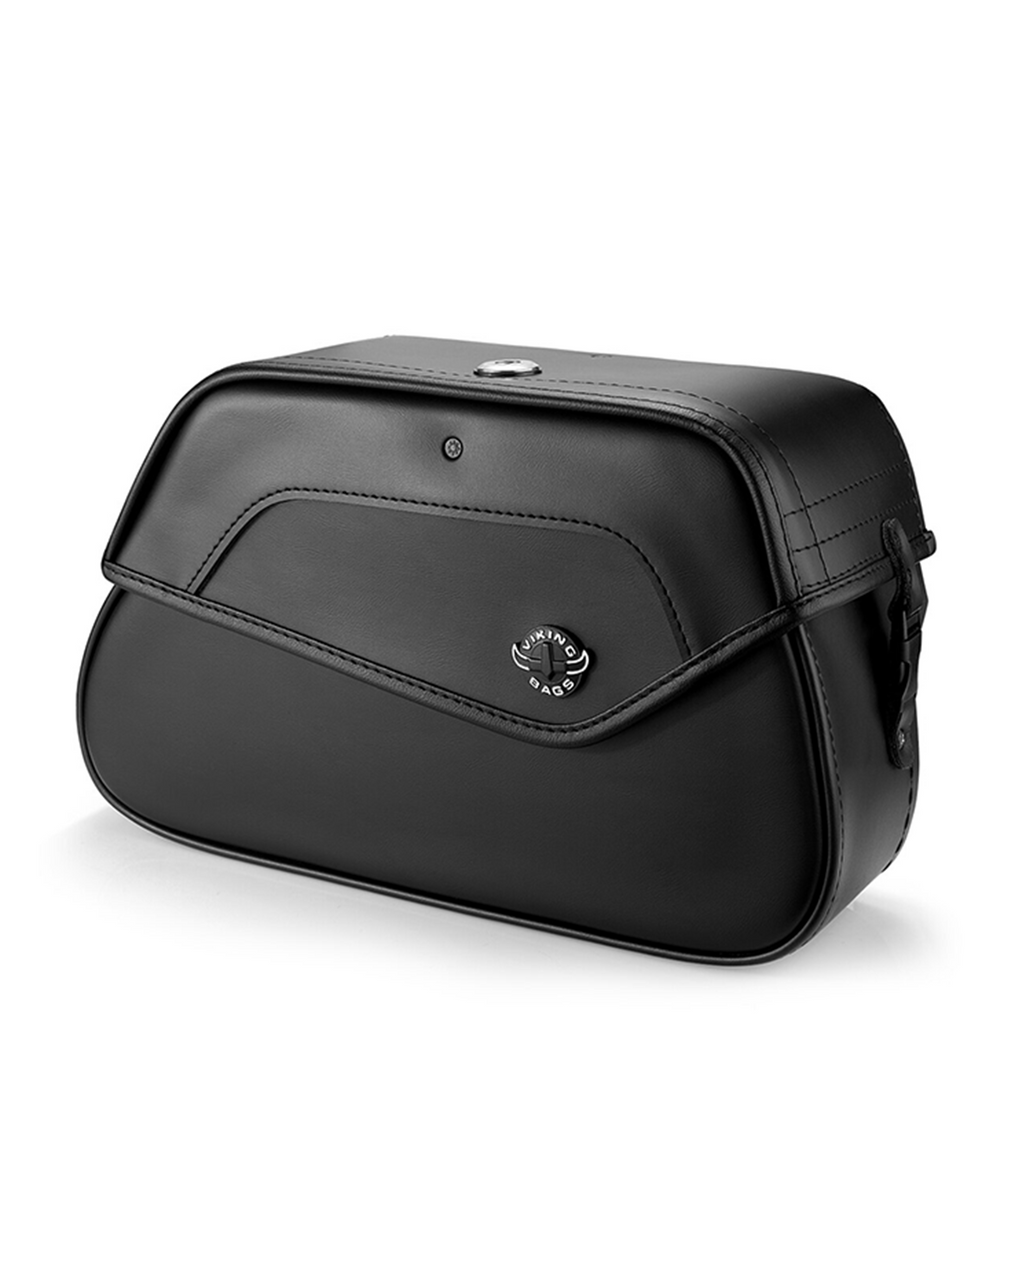 VikingBags Loki Medium Leather Motorcycle Saddlebags For Harley Softail Low Rider S FXLRS Main View